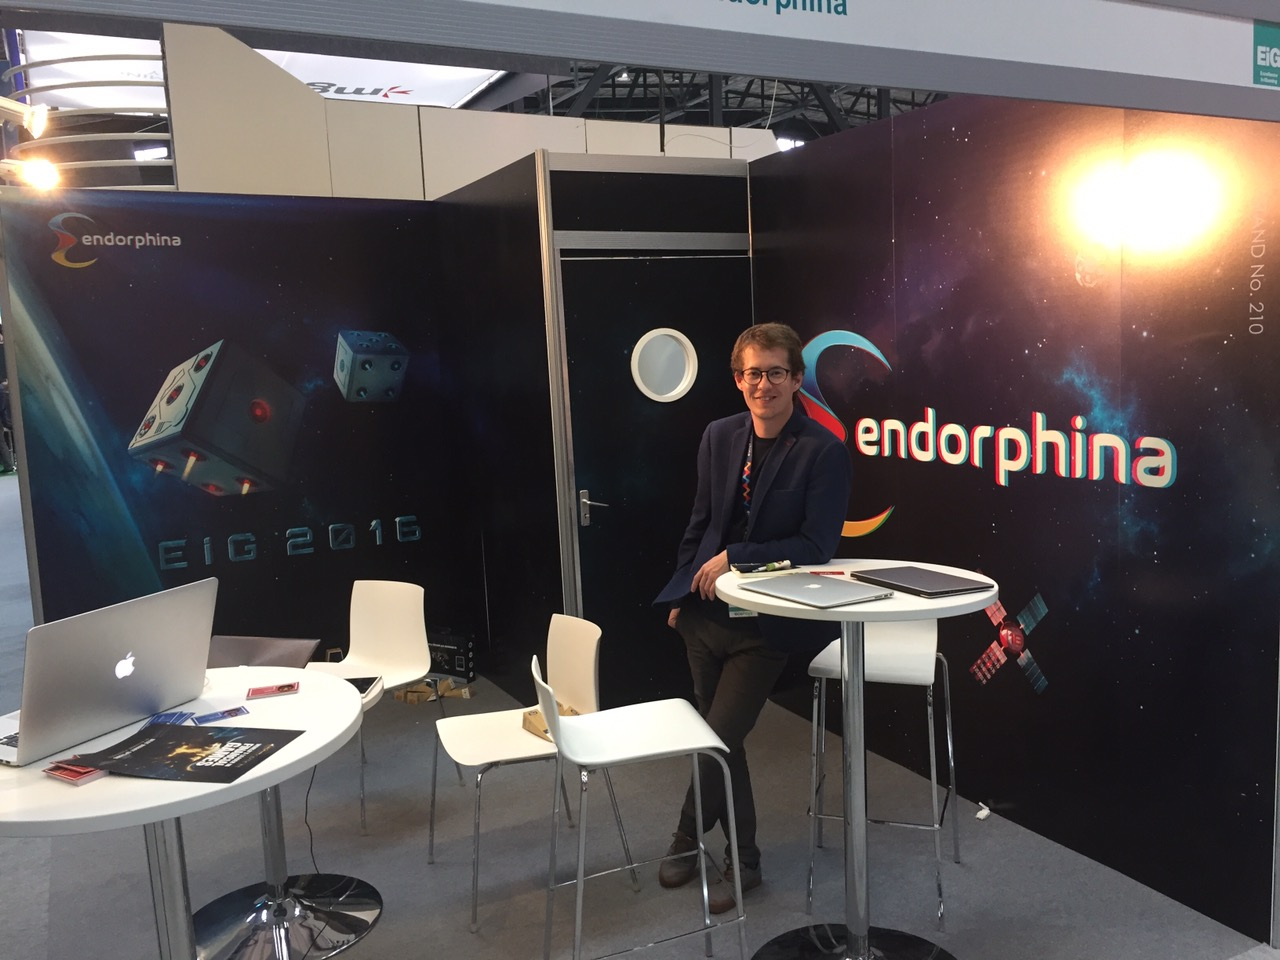 Photo report from EiG 2016 - space food, microbar and spectacular presentations 2